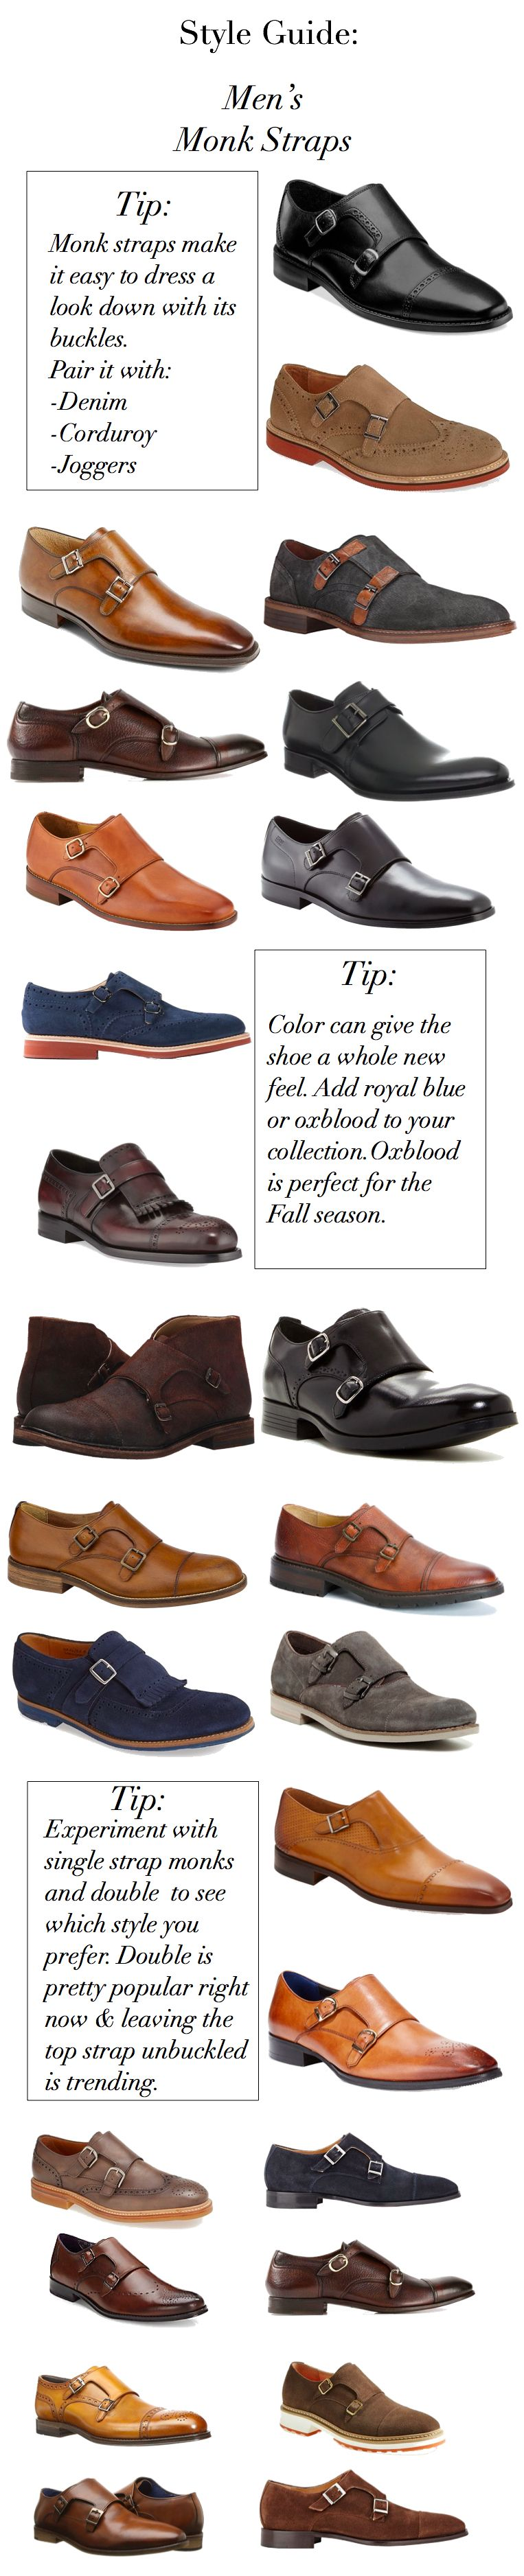 A-guide-to-wearing-monk-strap-shoes mens wear info.